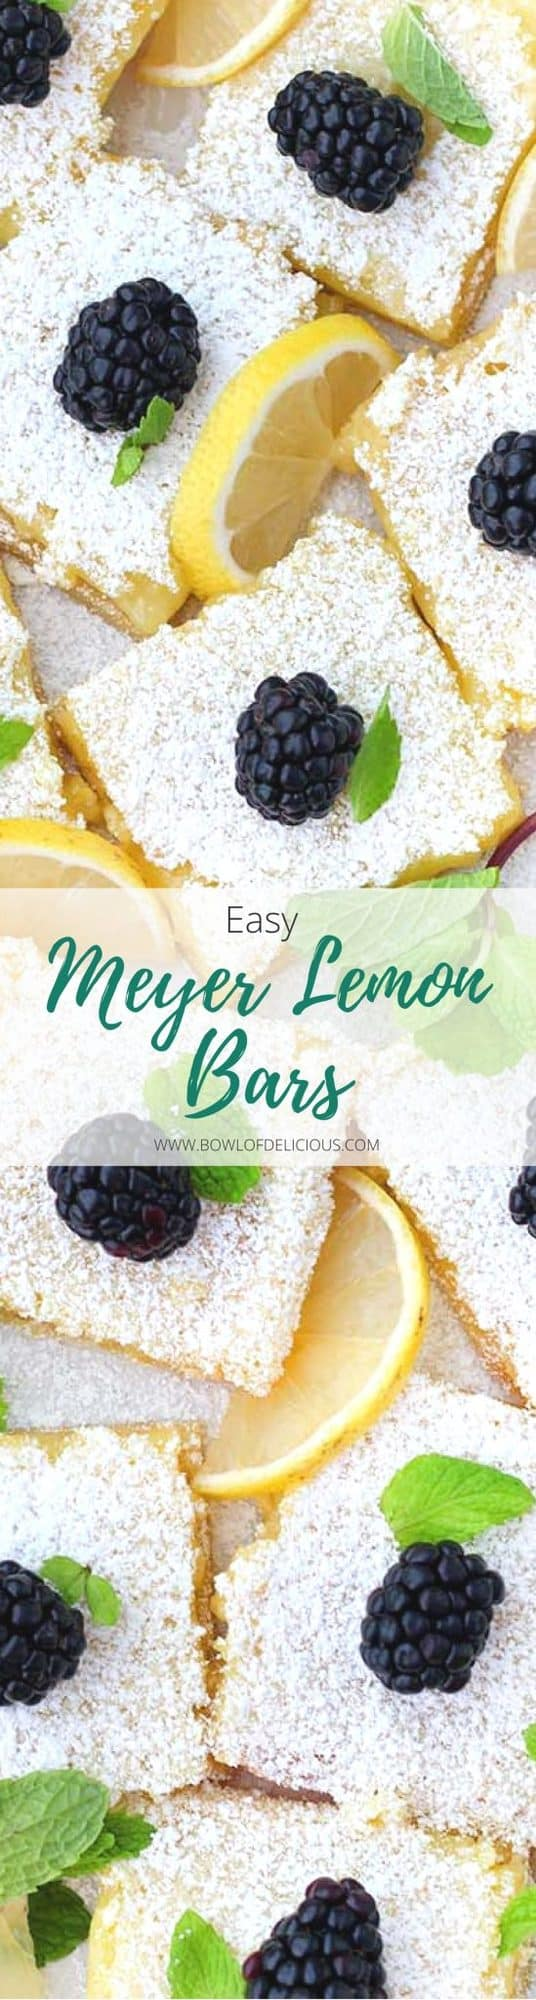 These easy Meyer lemon bars are the perfect balance of sweet and tart! The recipe uses whole eggs, and only one pot and bowl... it's a cinch to make. #LemonBars #MeyerLemons #Baking #EasyDesserts